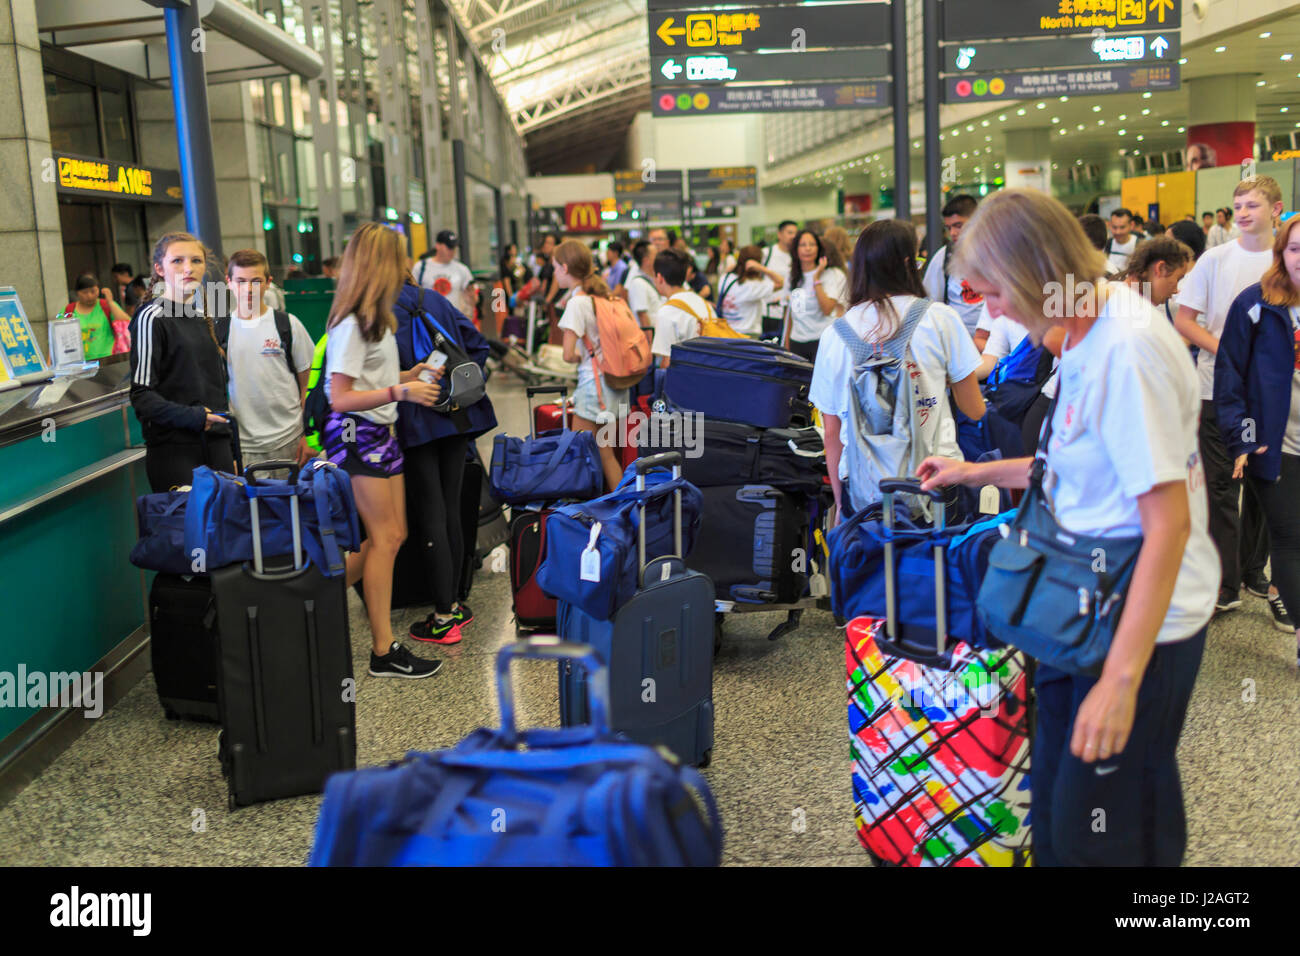 Junior High School students, teachers, parents arriving at Guangzhou airport, China - Stock Image